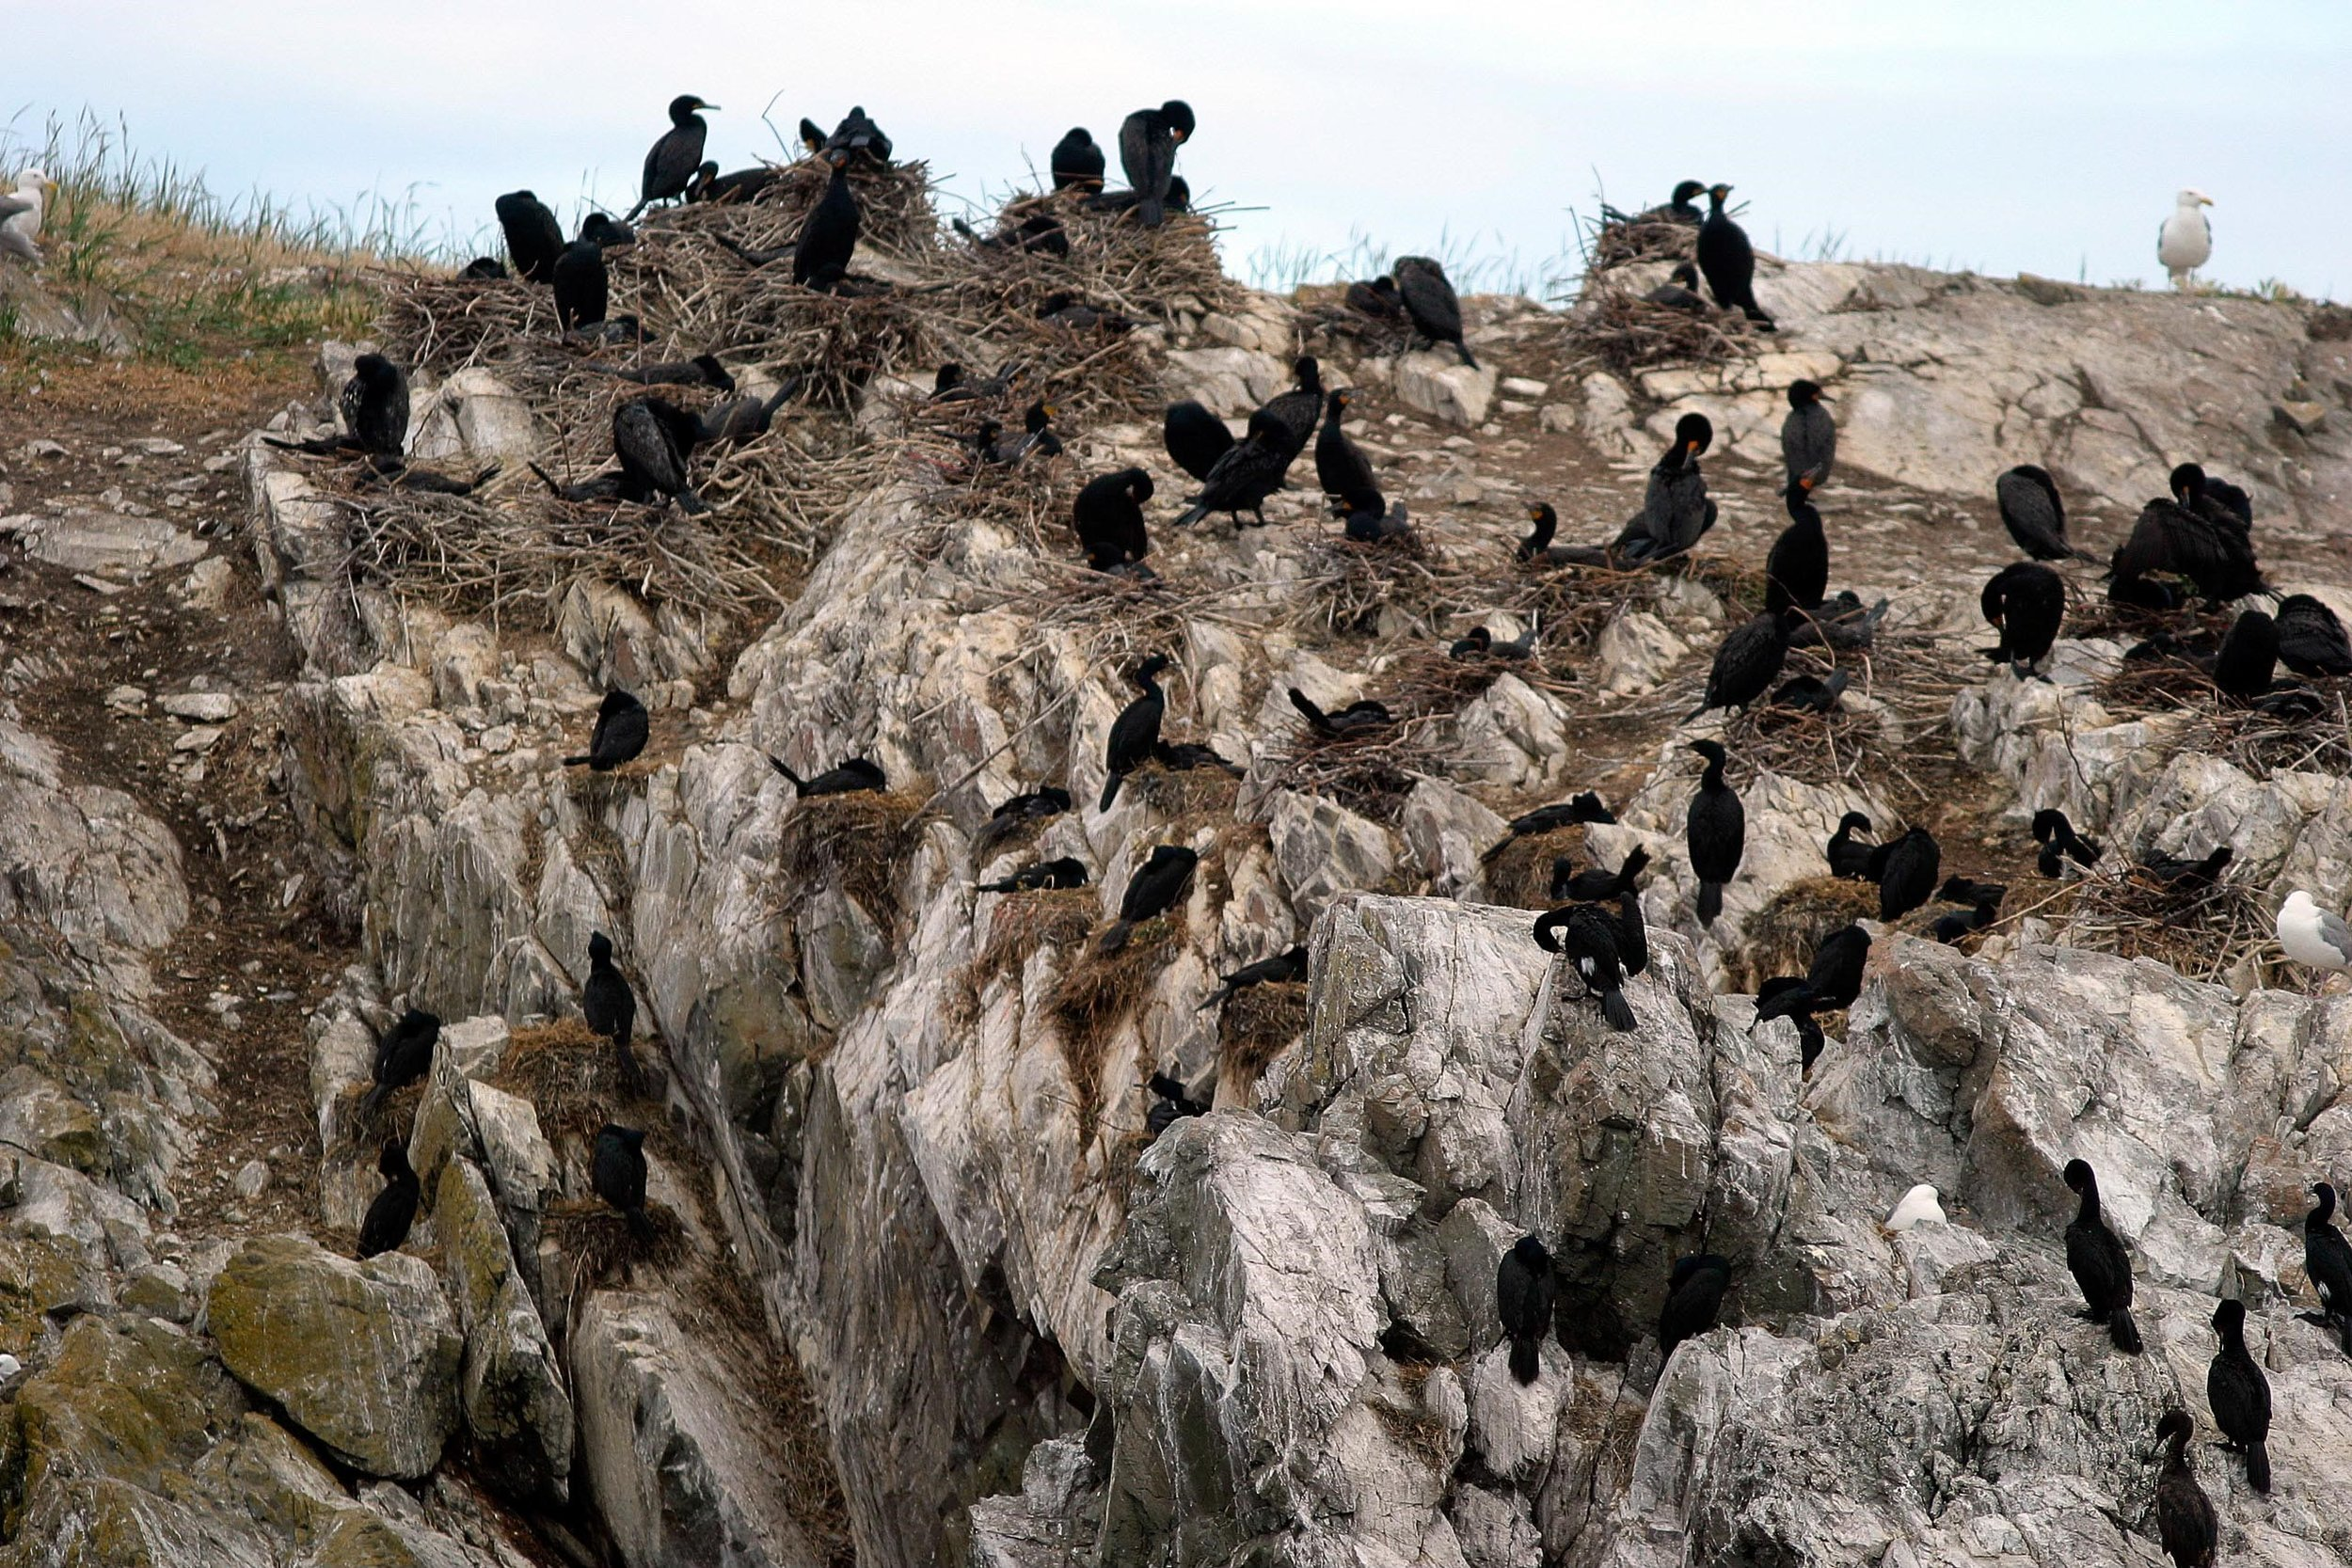 Close-up of the double-crested cormorants' stick nests and pelagic cormorants's cliff-faced nests